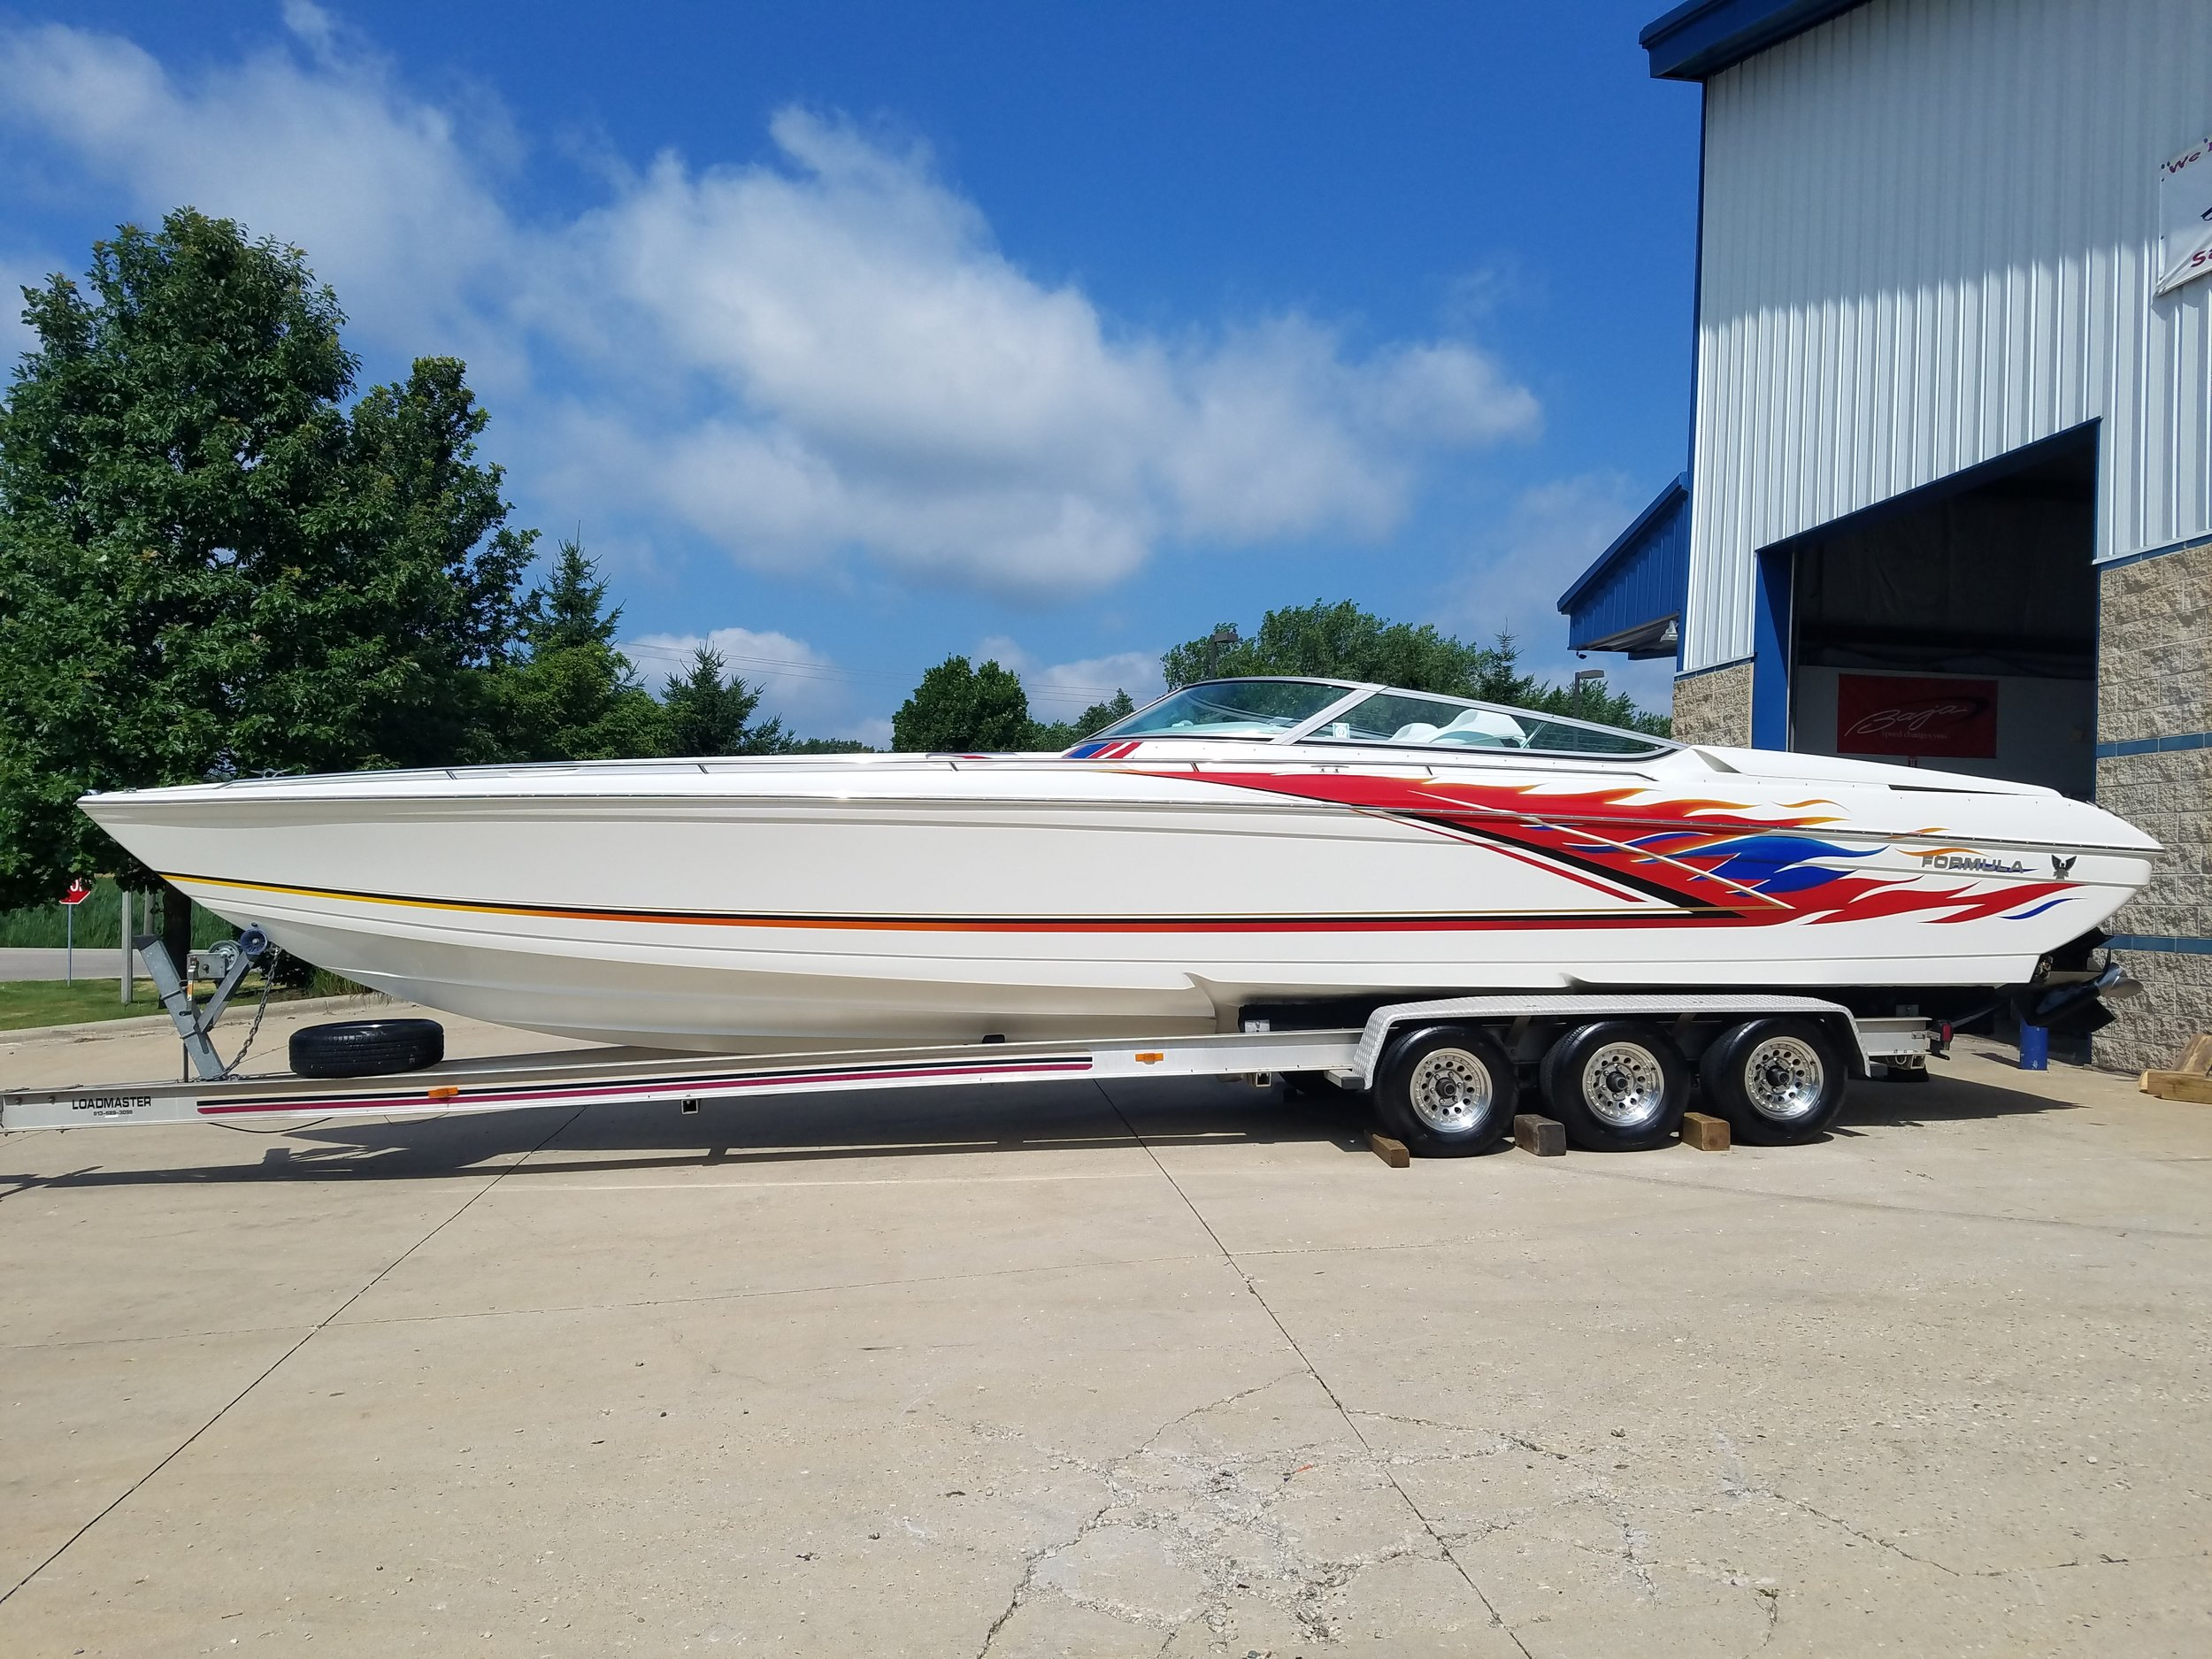 2000 Formula 353 Fastech - SOLD in 24 HOURS!